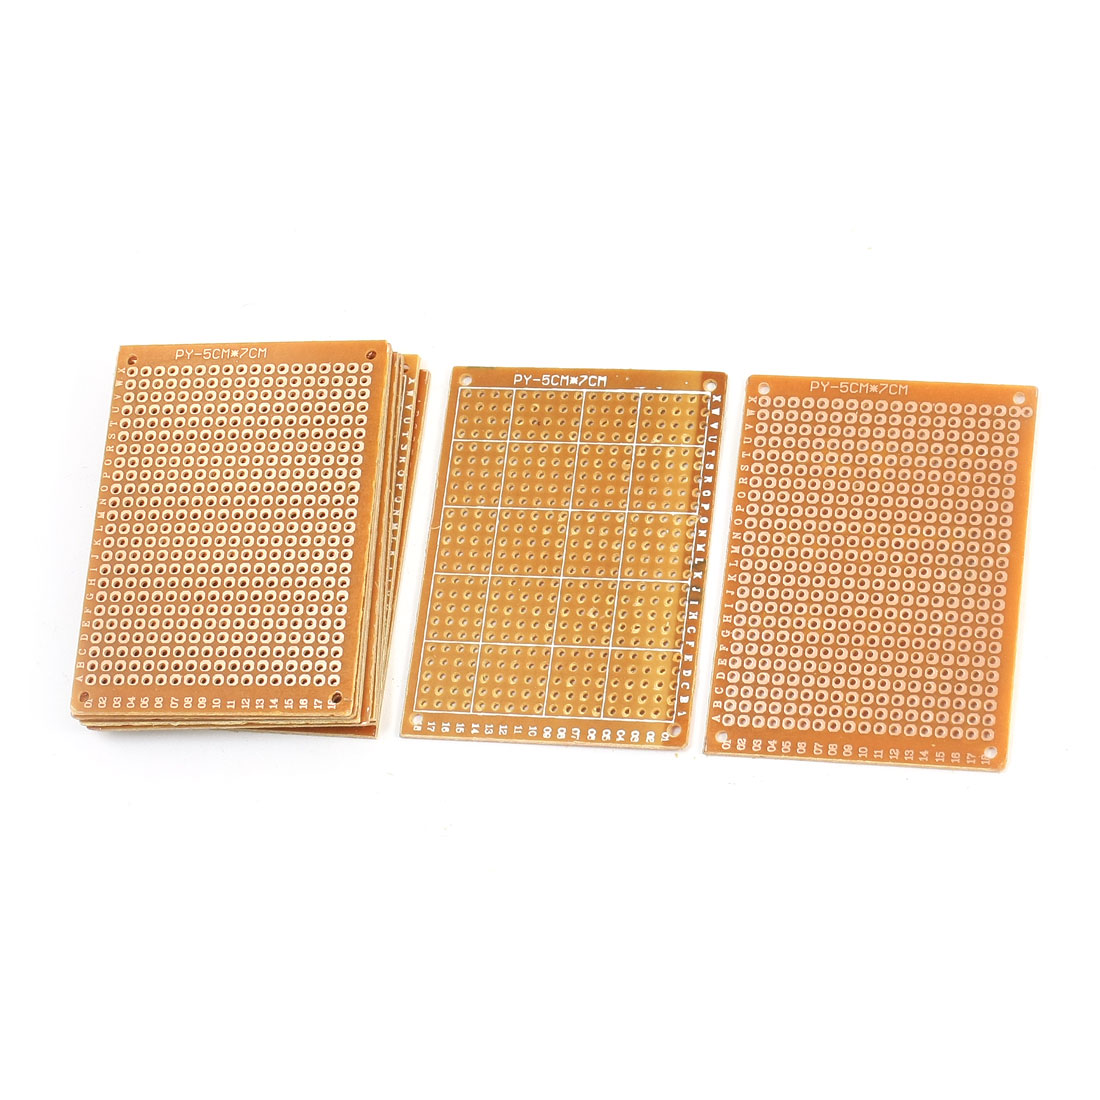 10Pcs Bakelite Single Side Copper Prototype PCB Matrix Board 7cmx5cm